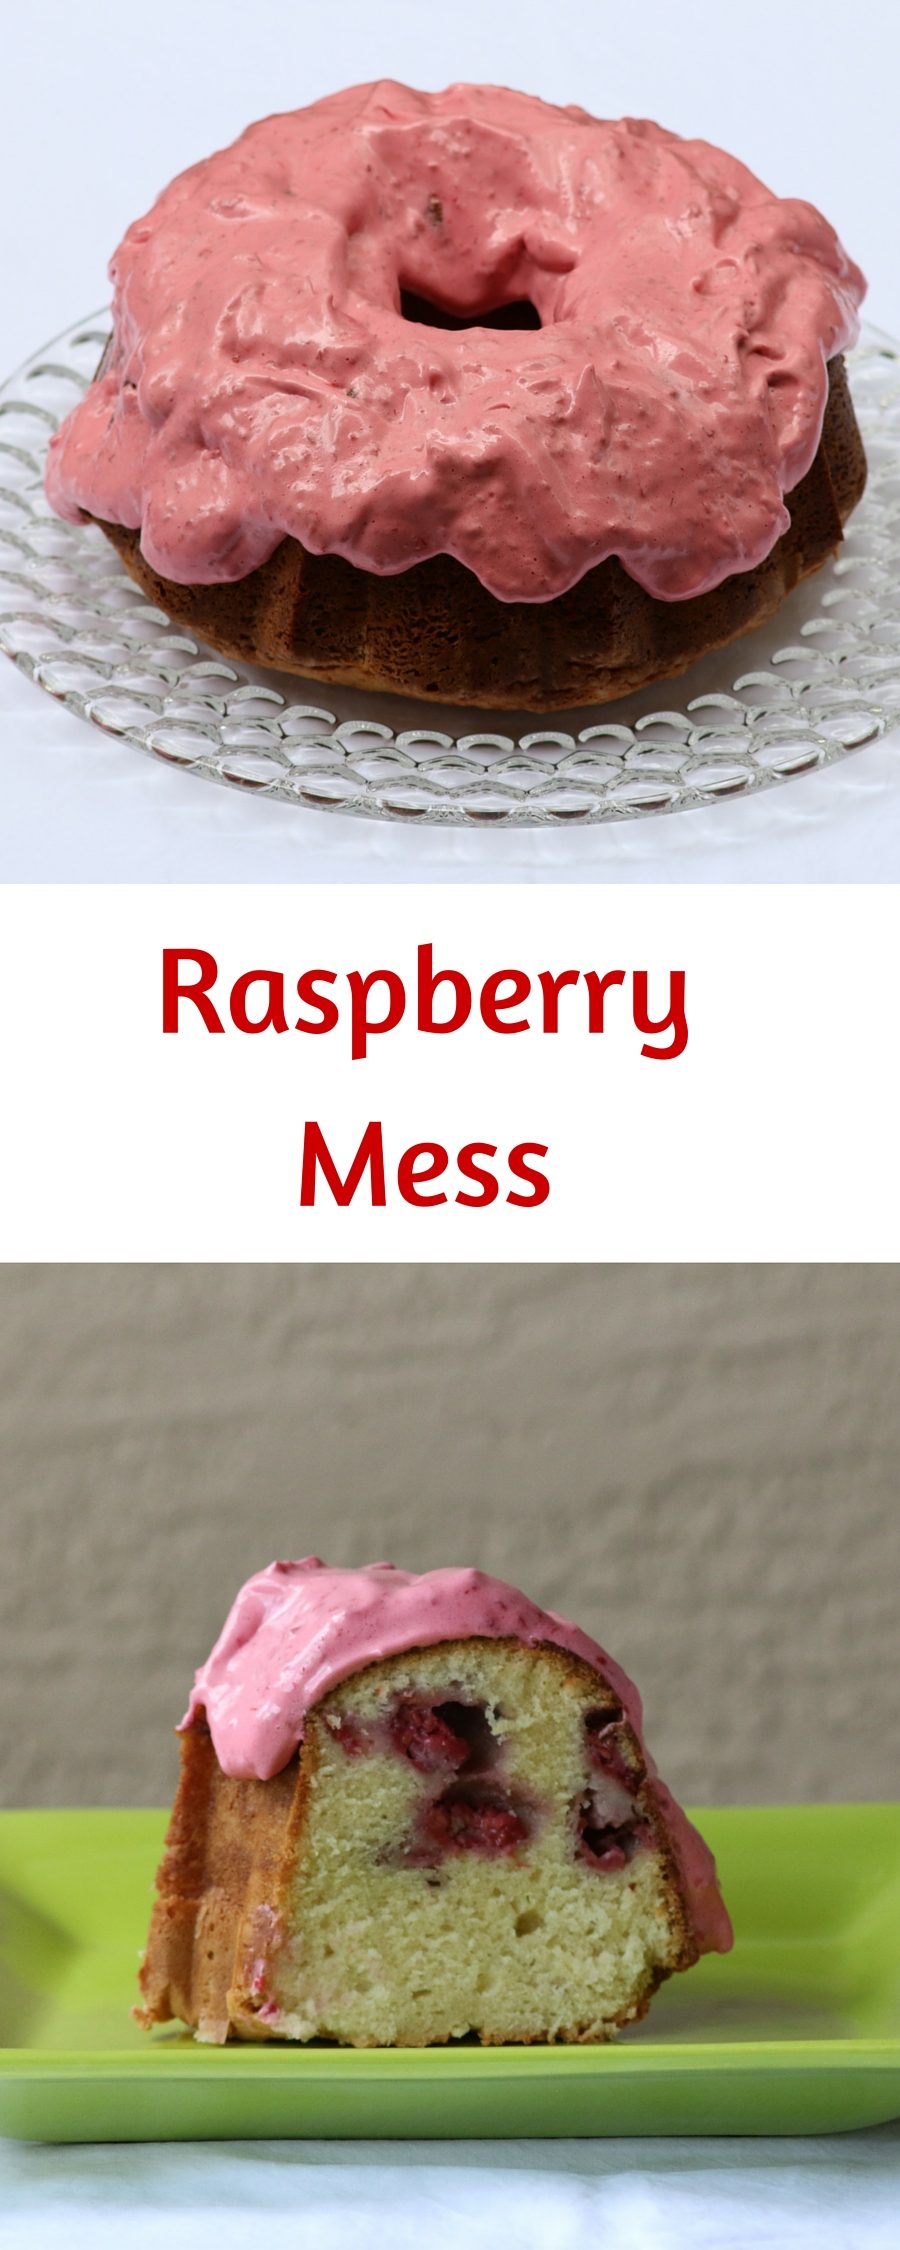 Raspberry Mess is a name that does not accurately define this gorgeous dessert. An easy to follow topping recipe that goes over your favorite cake.